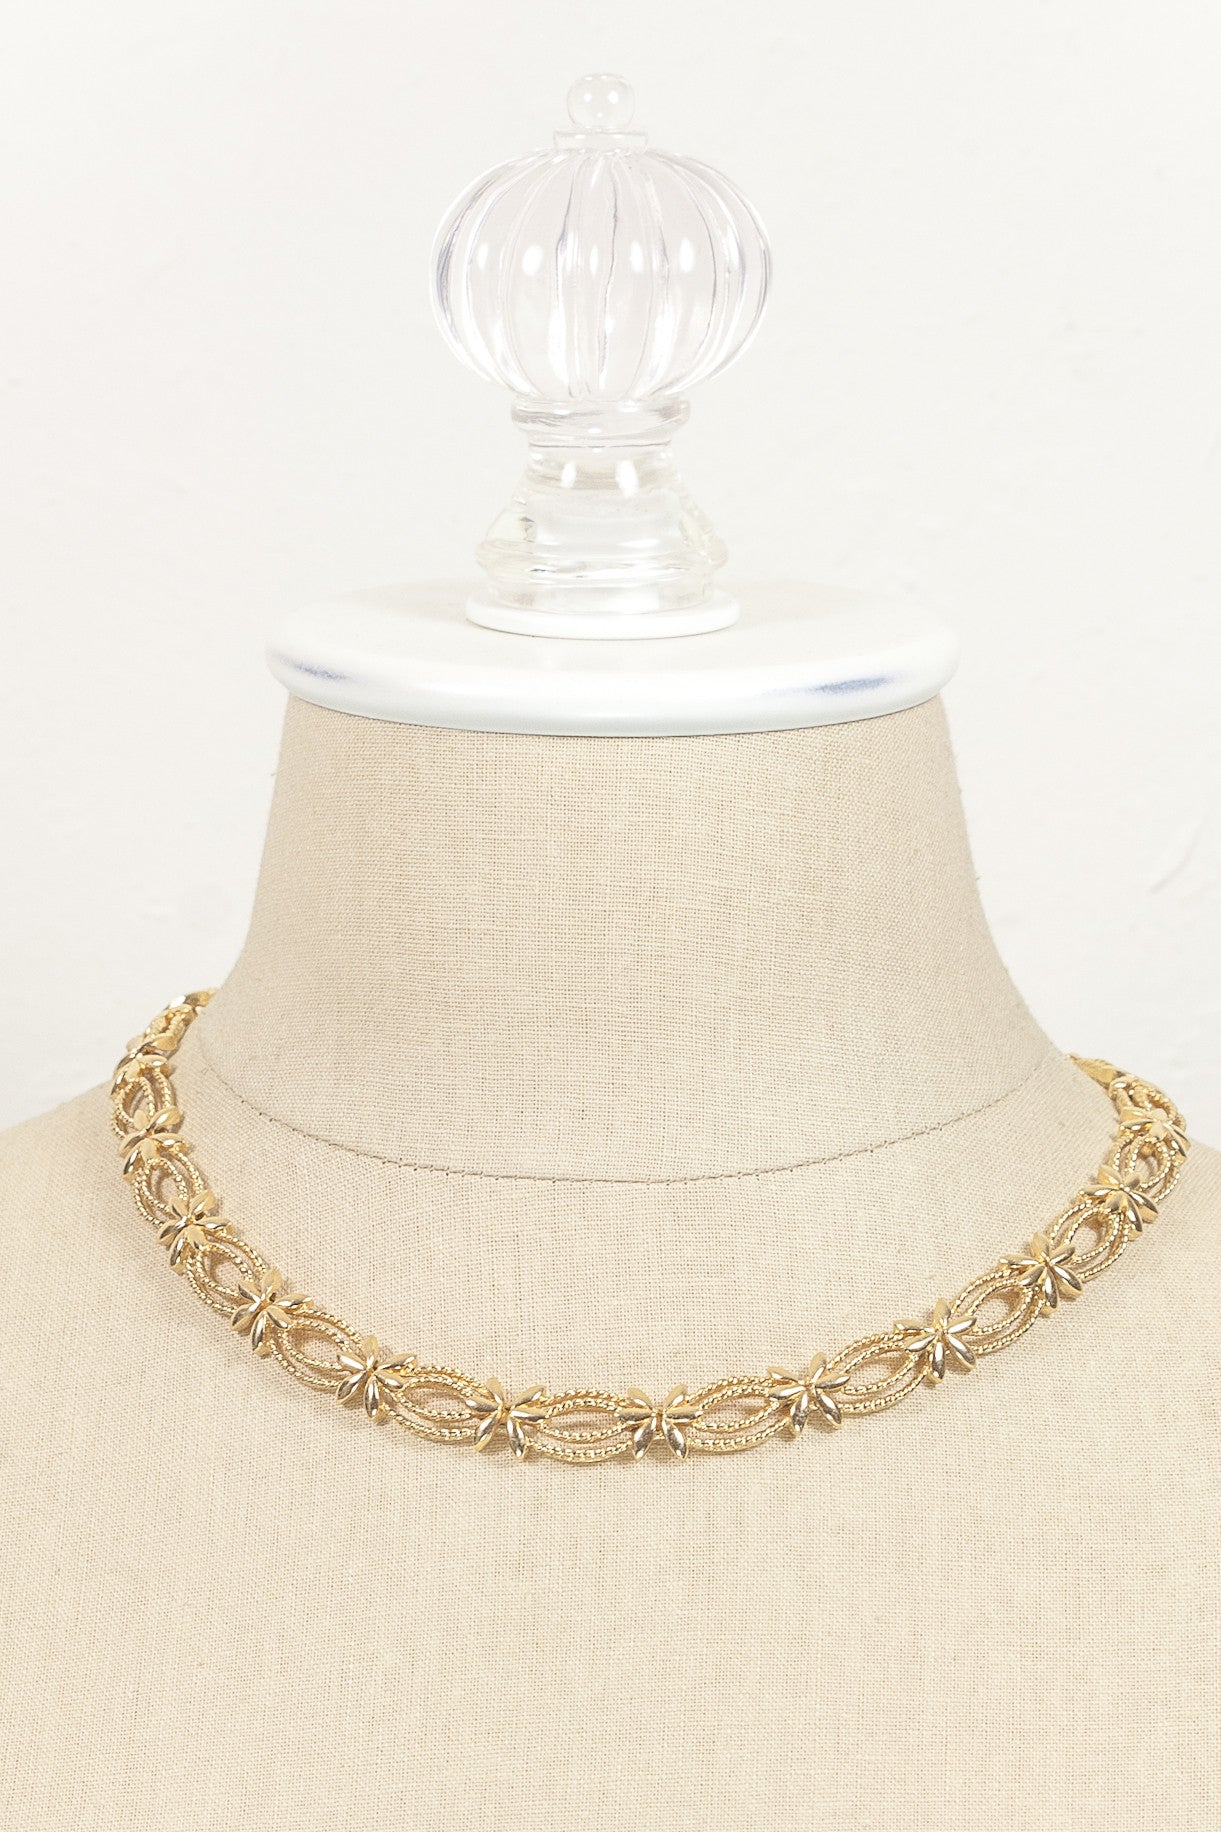 60's__Monet__Floral Link Necklace